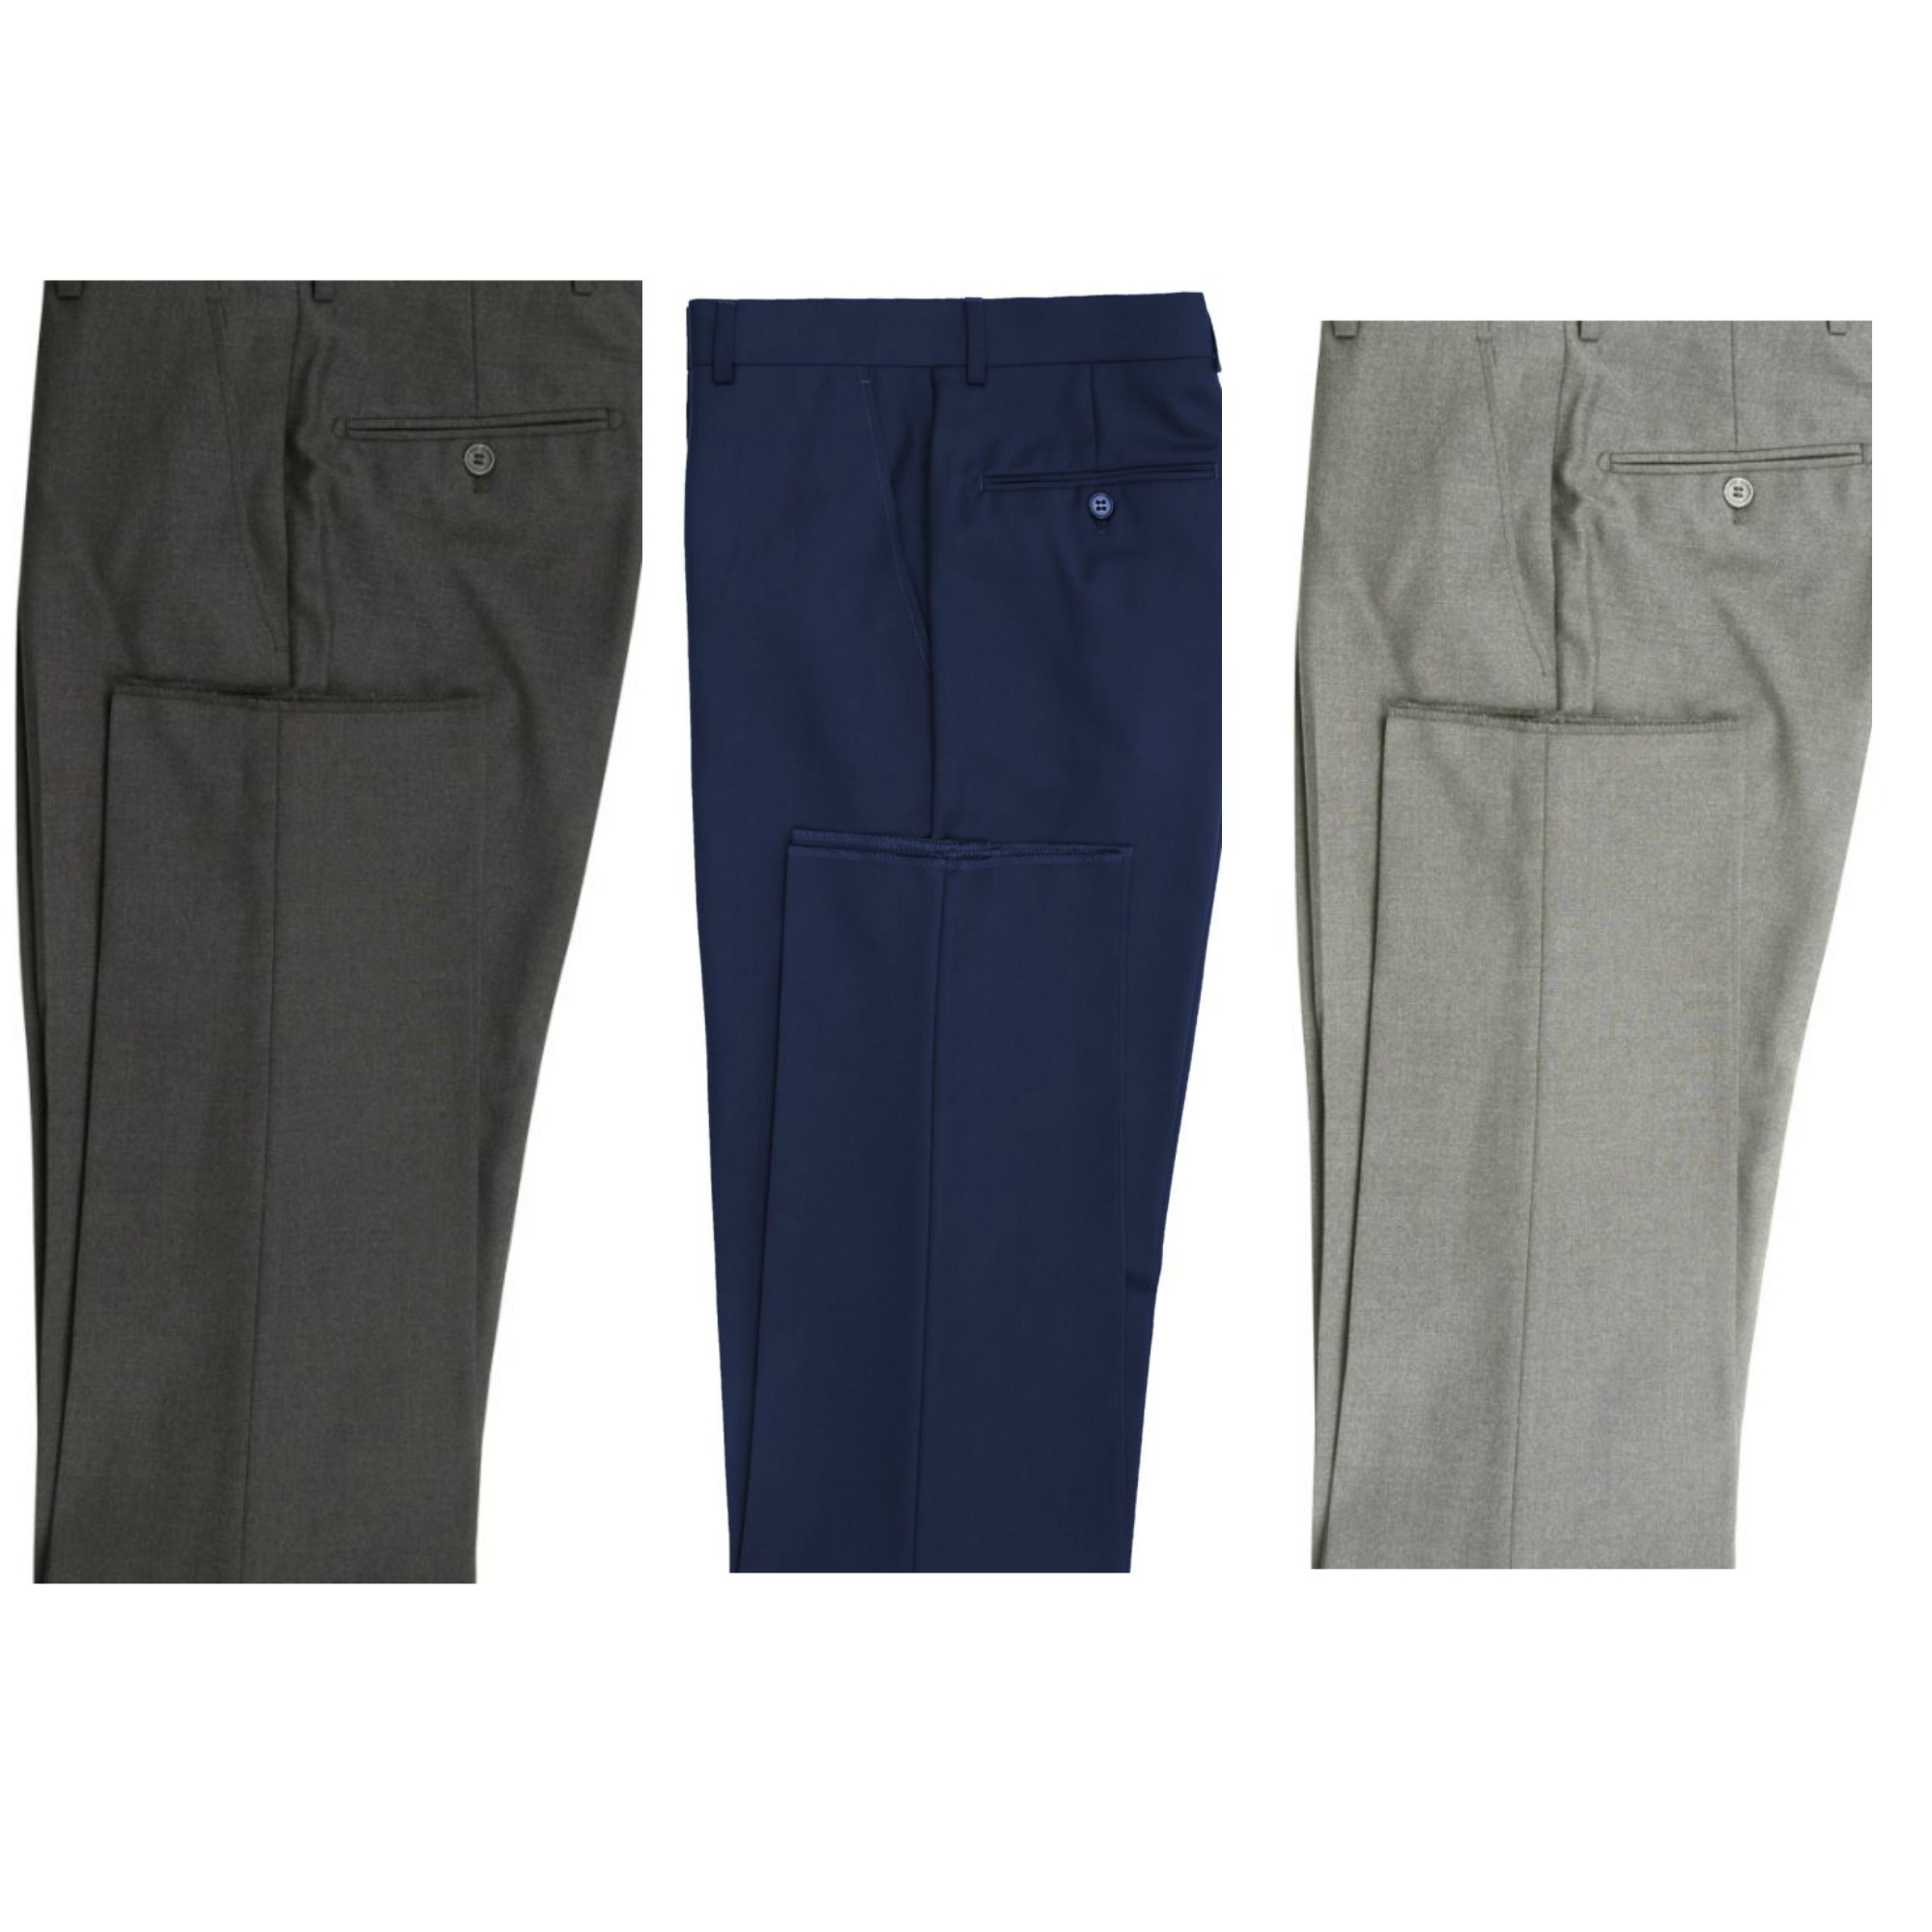 Men's Slim Fit Dress Pants